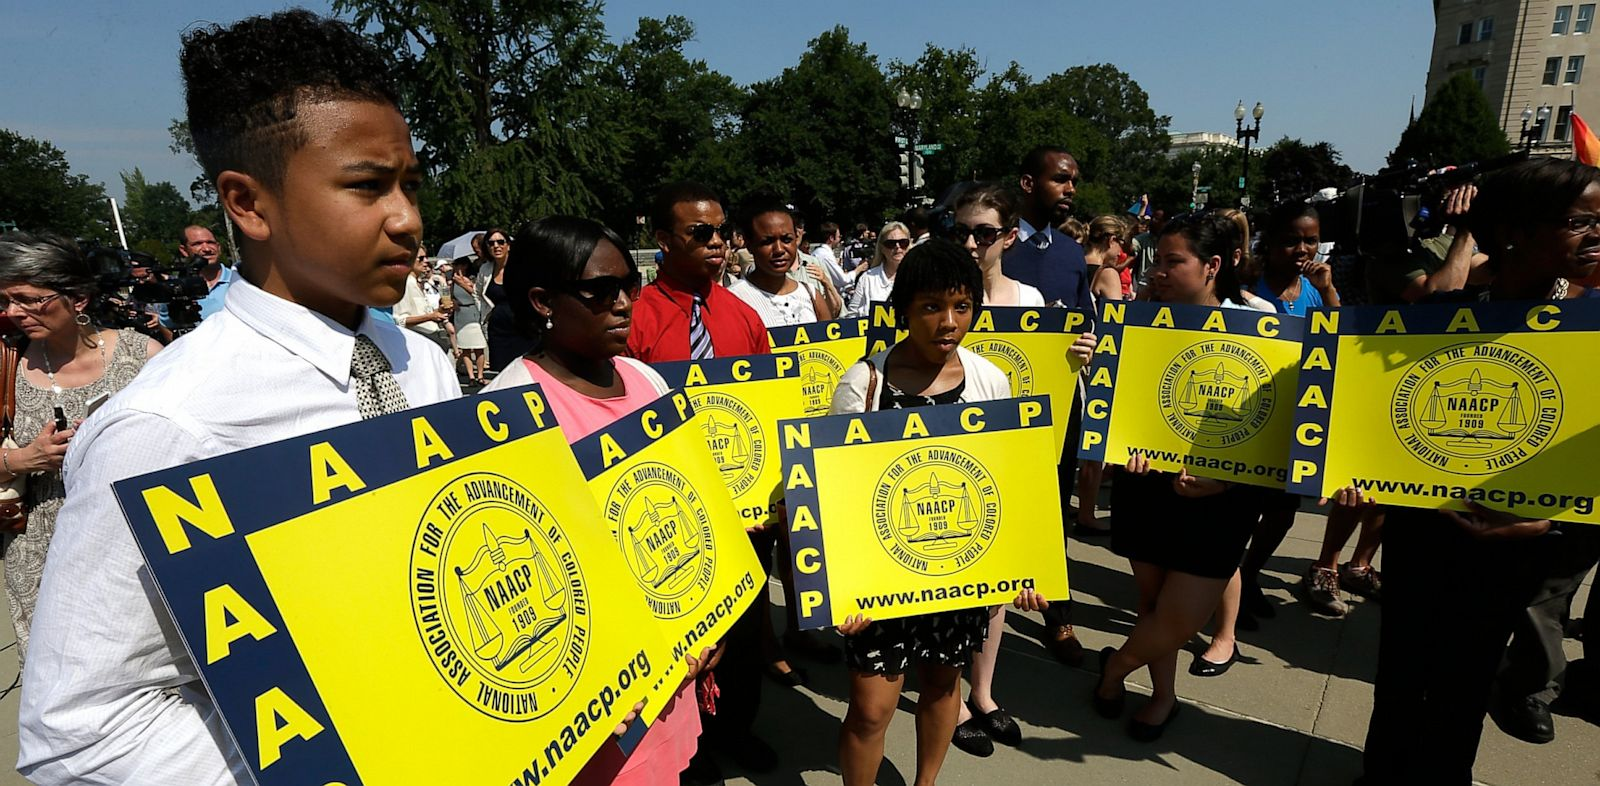 PHOTO: Supporters of the National Association for the Advancement of Colored People (NAACP) hold signs outside the U.S. Supreme Court building on June 25, 2013 in Washington, D.C.